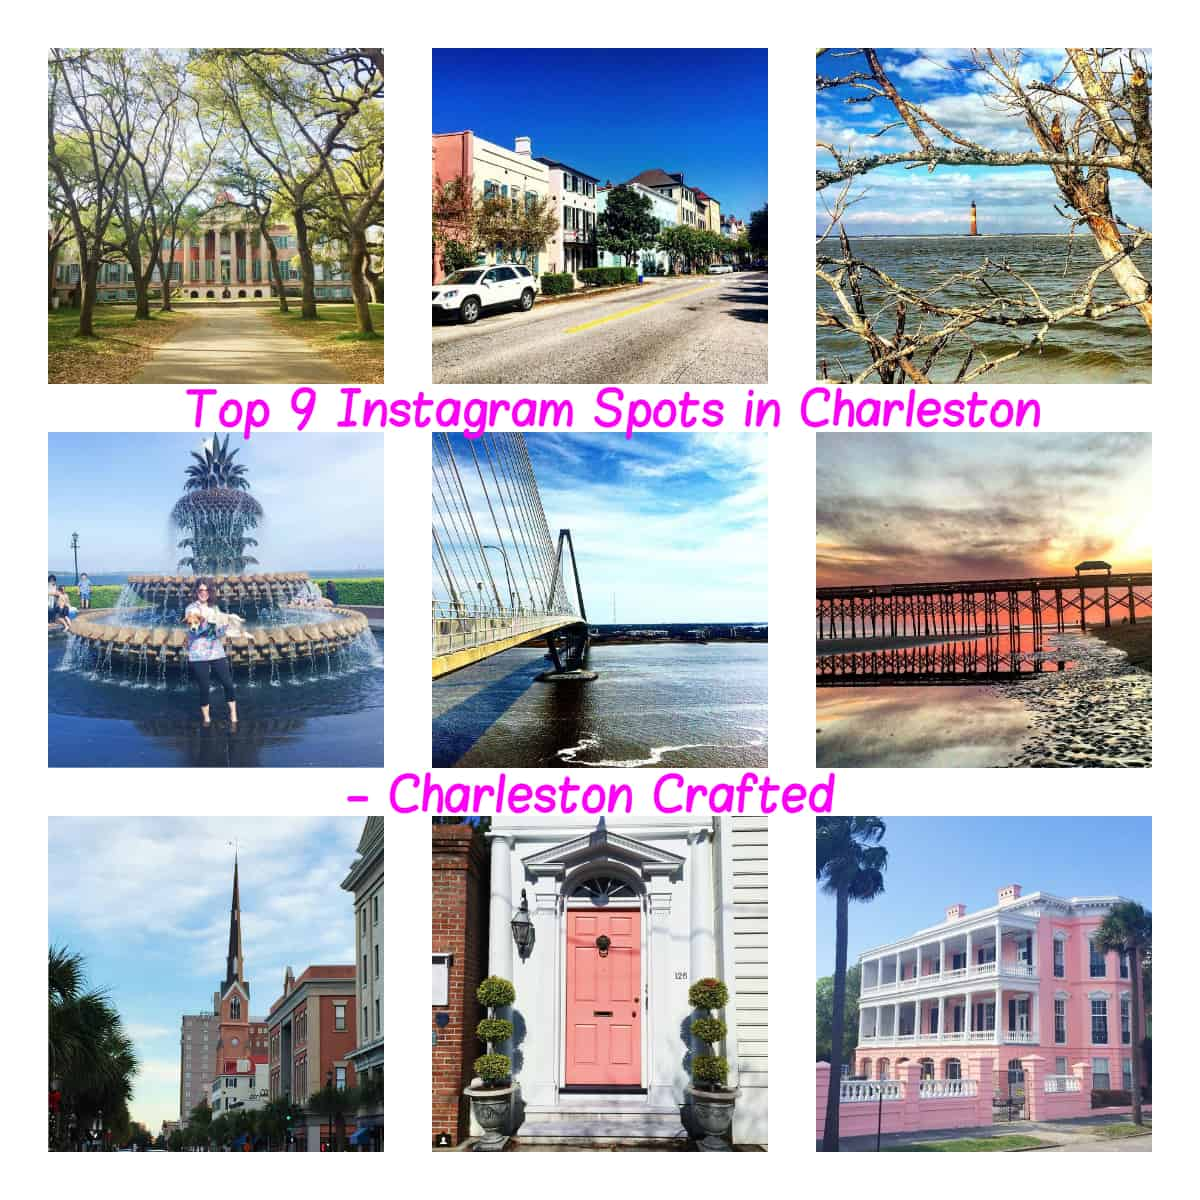 The Top 9 Instagram Spots in Charleston